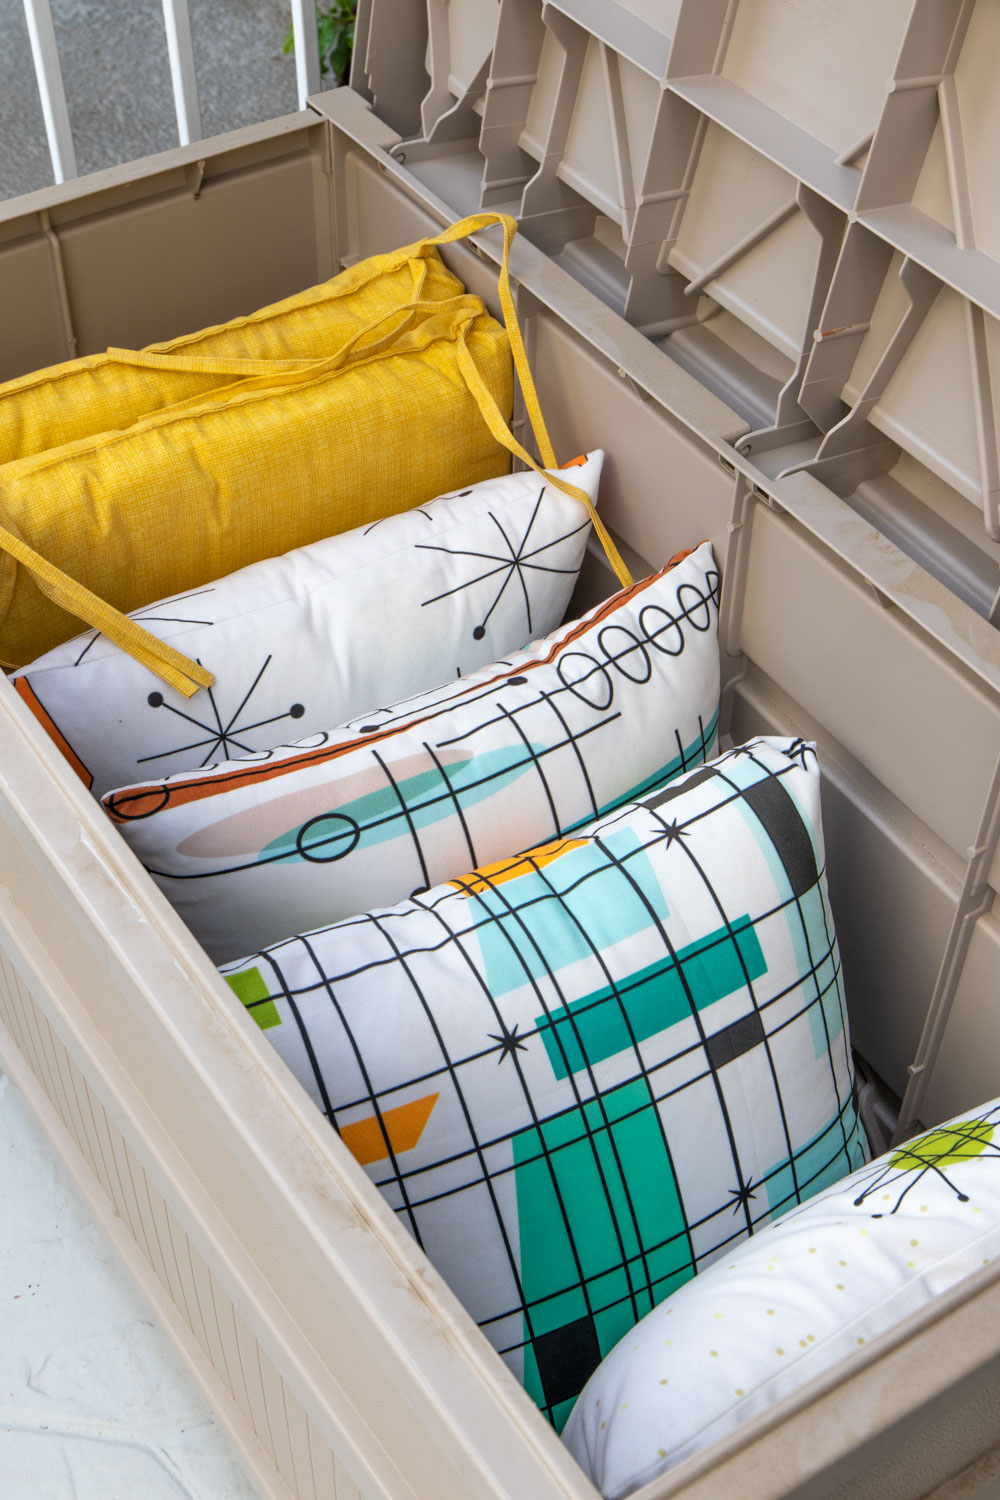 inside of deck box filled with pillows